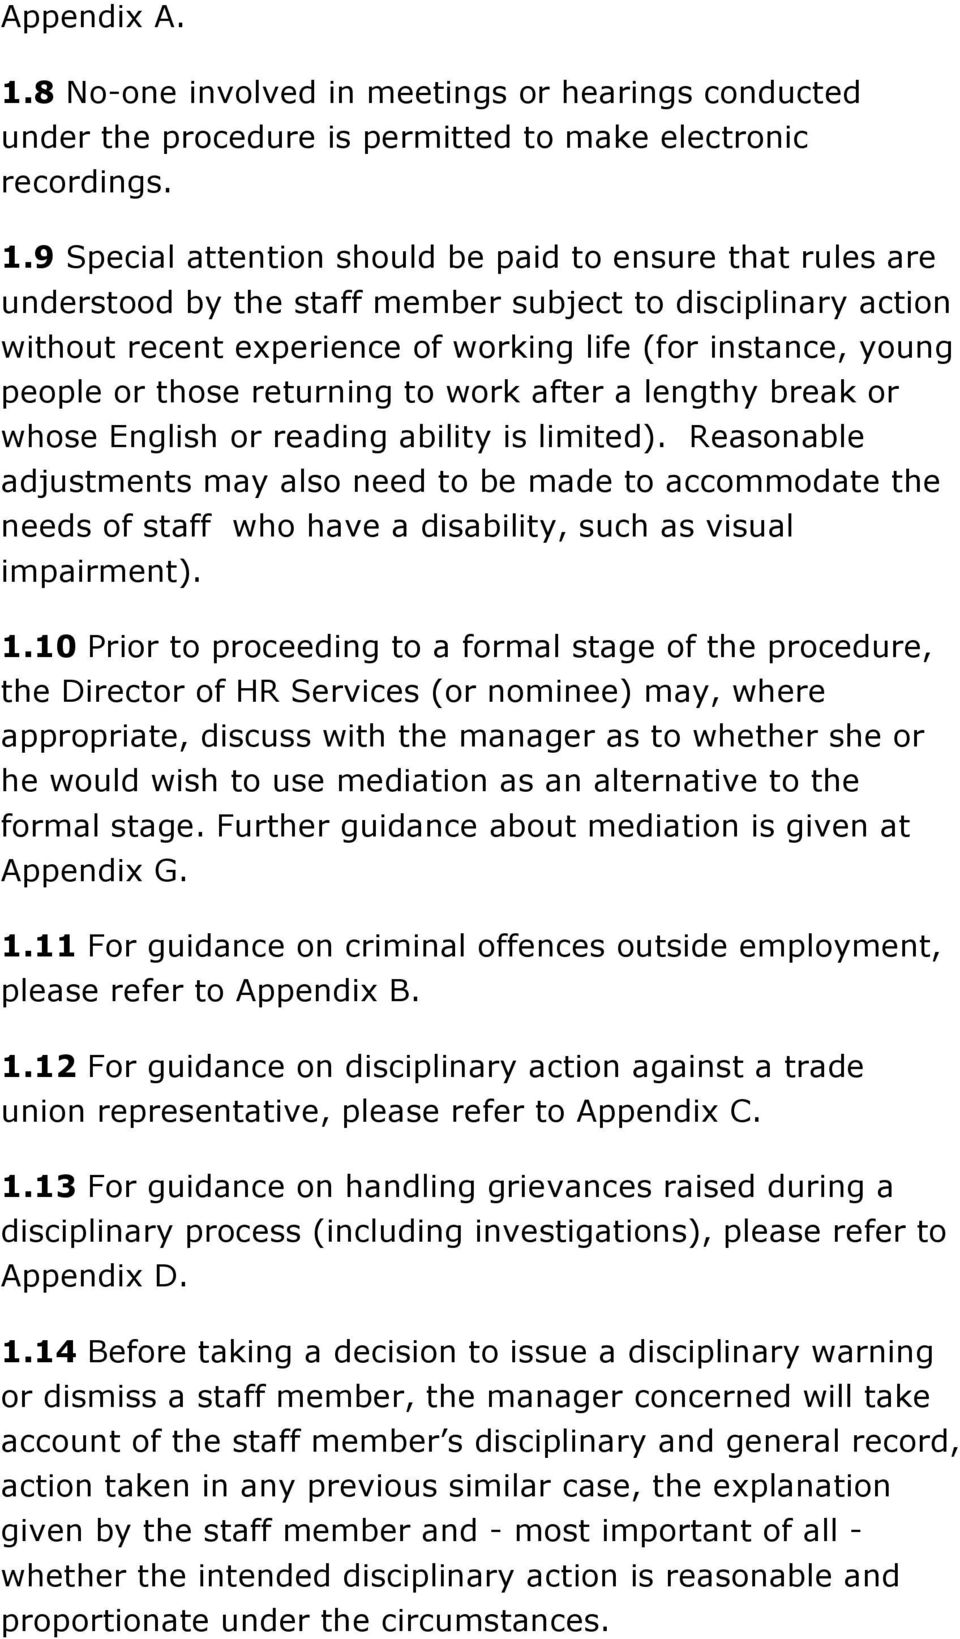 9 Special attention should be paid to ensure that rules are understood by the staff member subject to disciplinary action without recent experience of working life (for instance, young people or